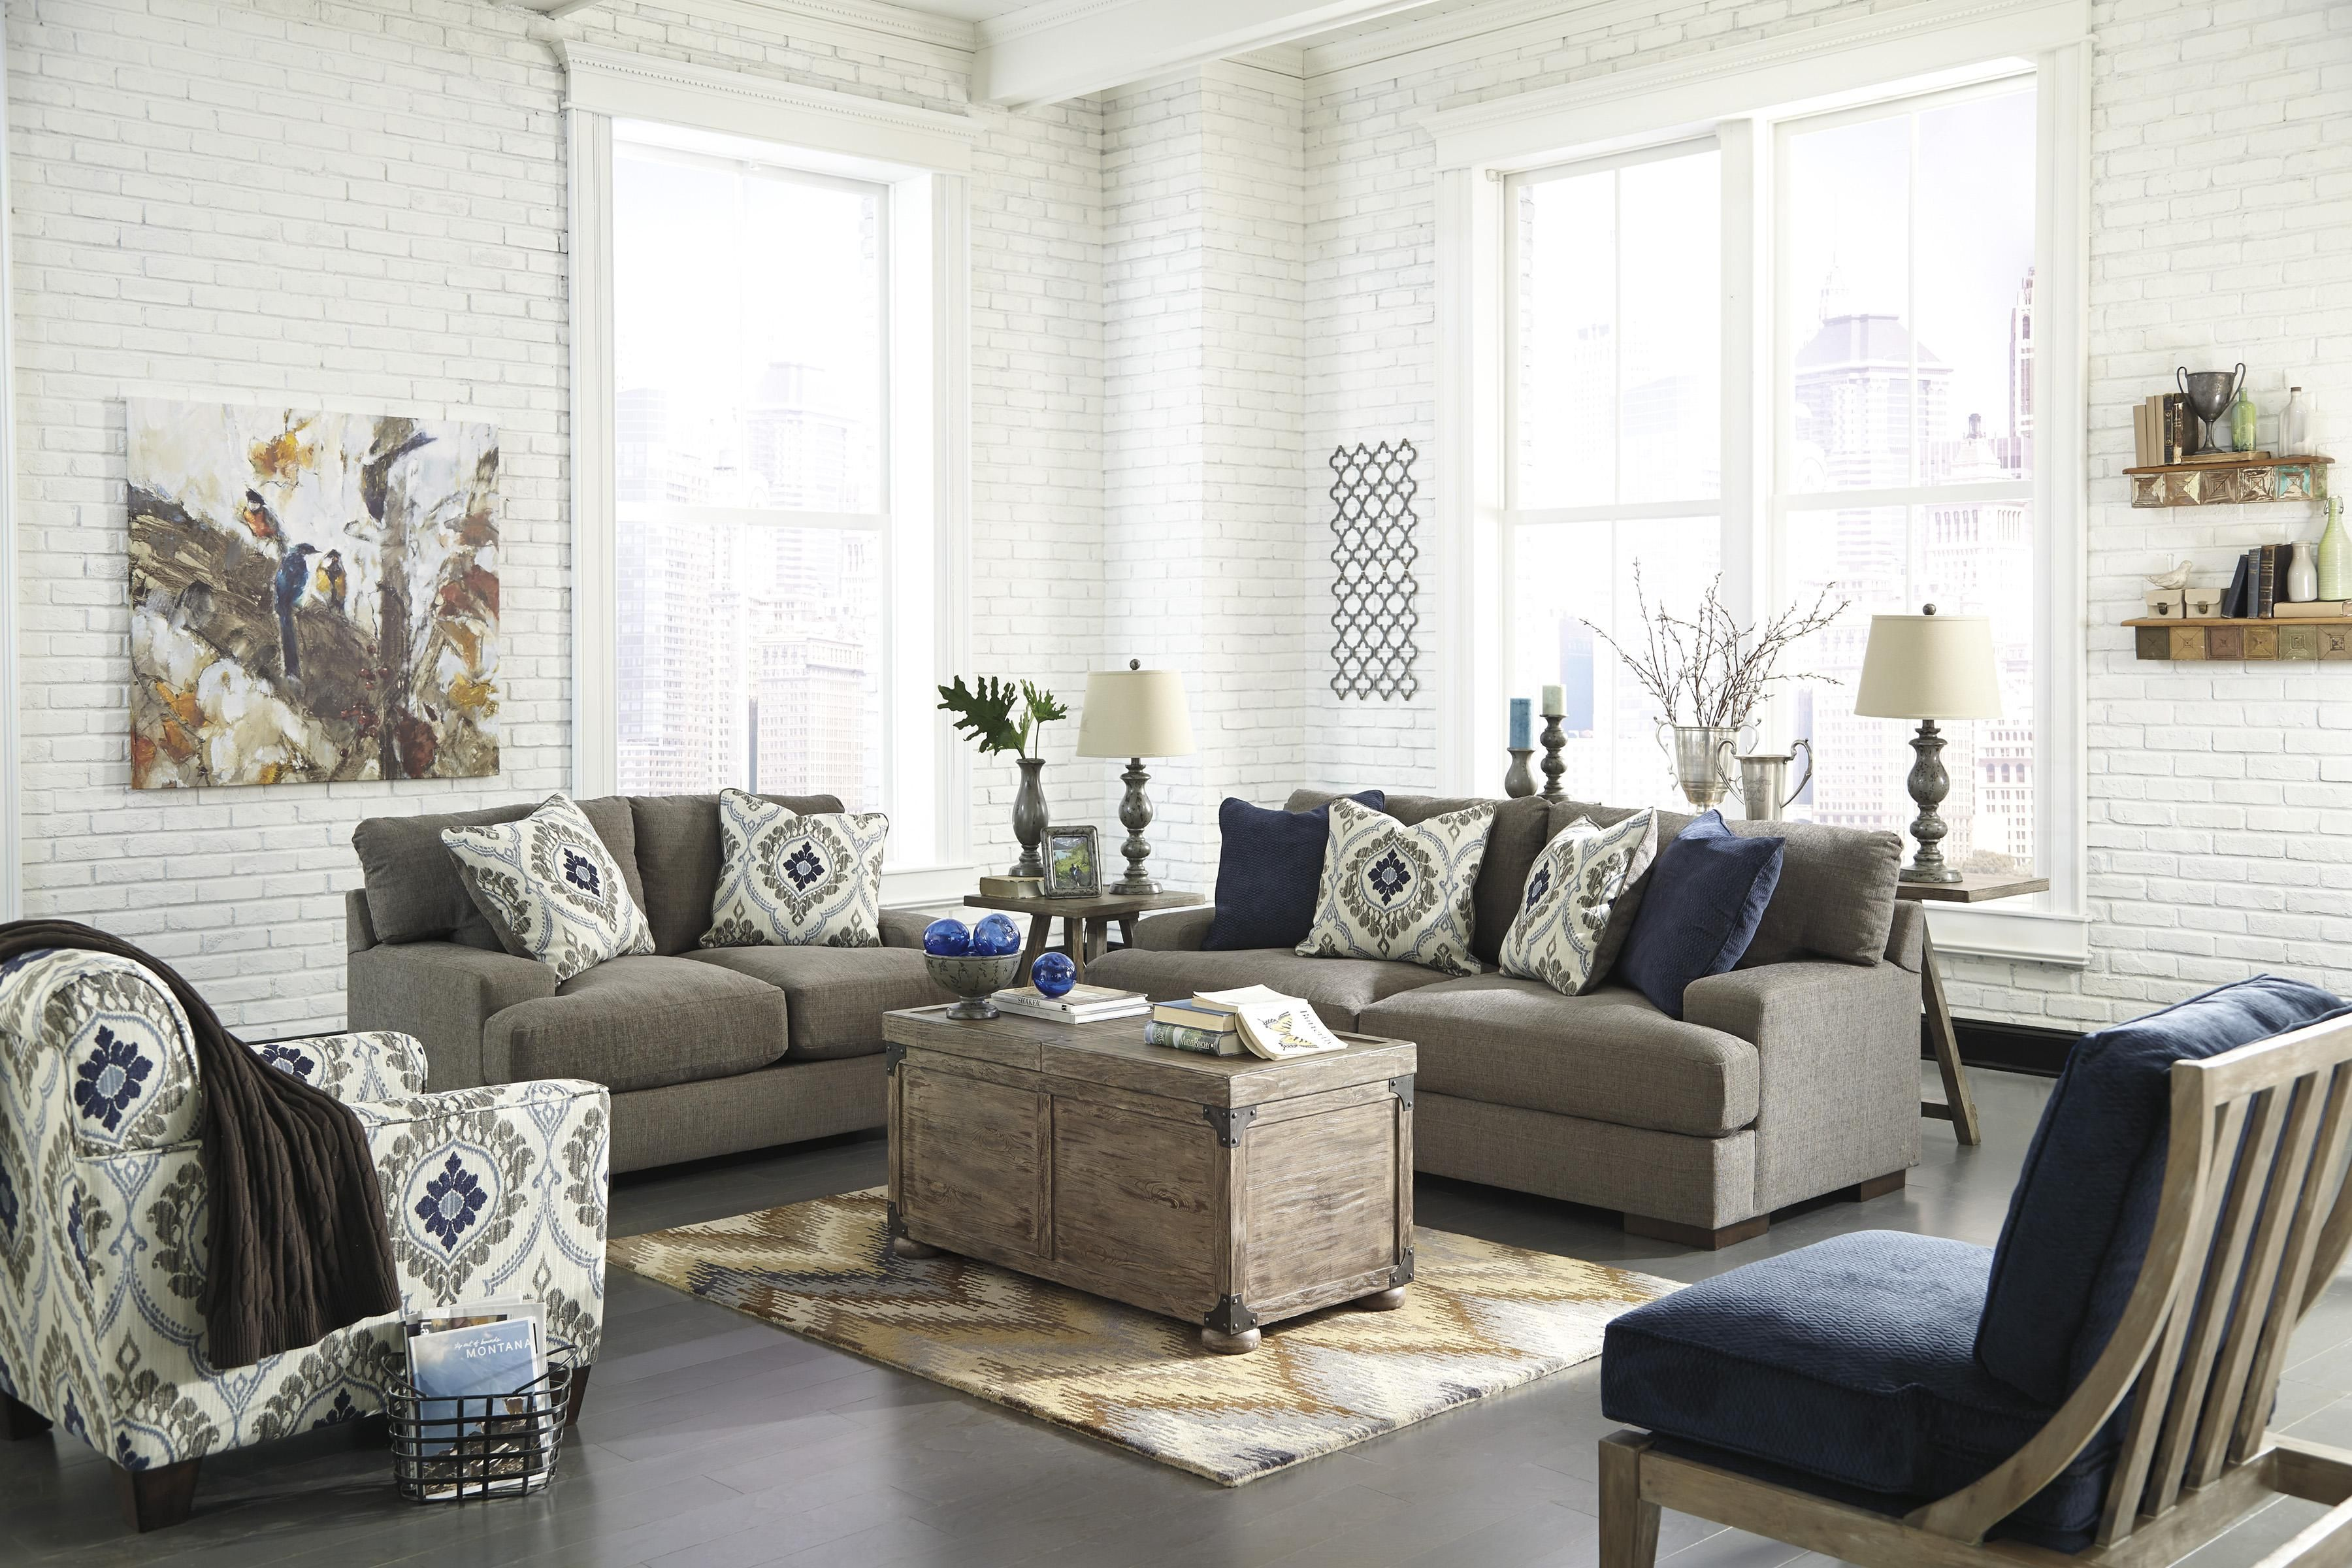 in products benchcraft number contemporary khaki worcester rotmans couches couch ashmont fabric item sofa